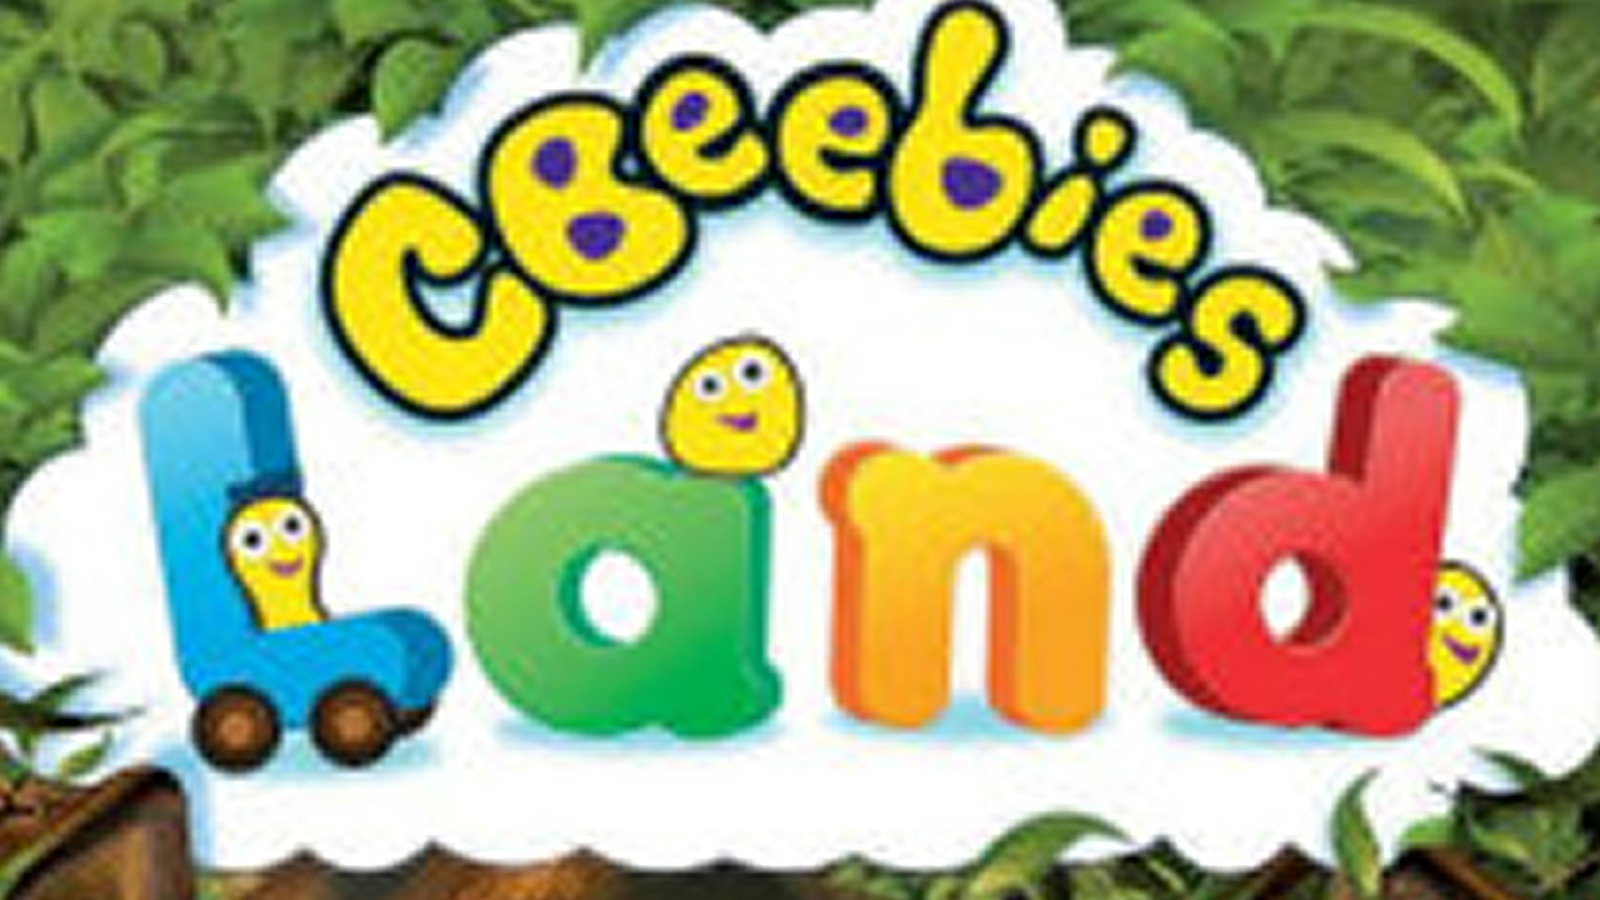 Cbeebies logo clipart clipart black and white library New for 2014 - CBeebies Land clipart black and white library